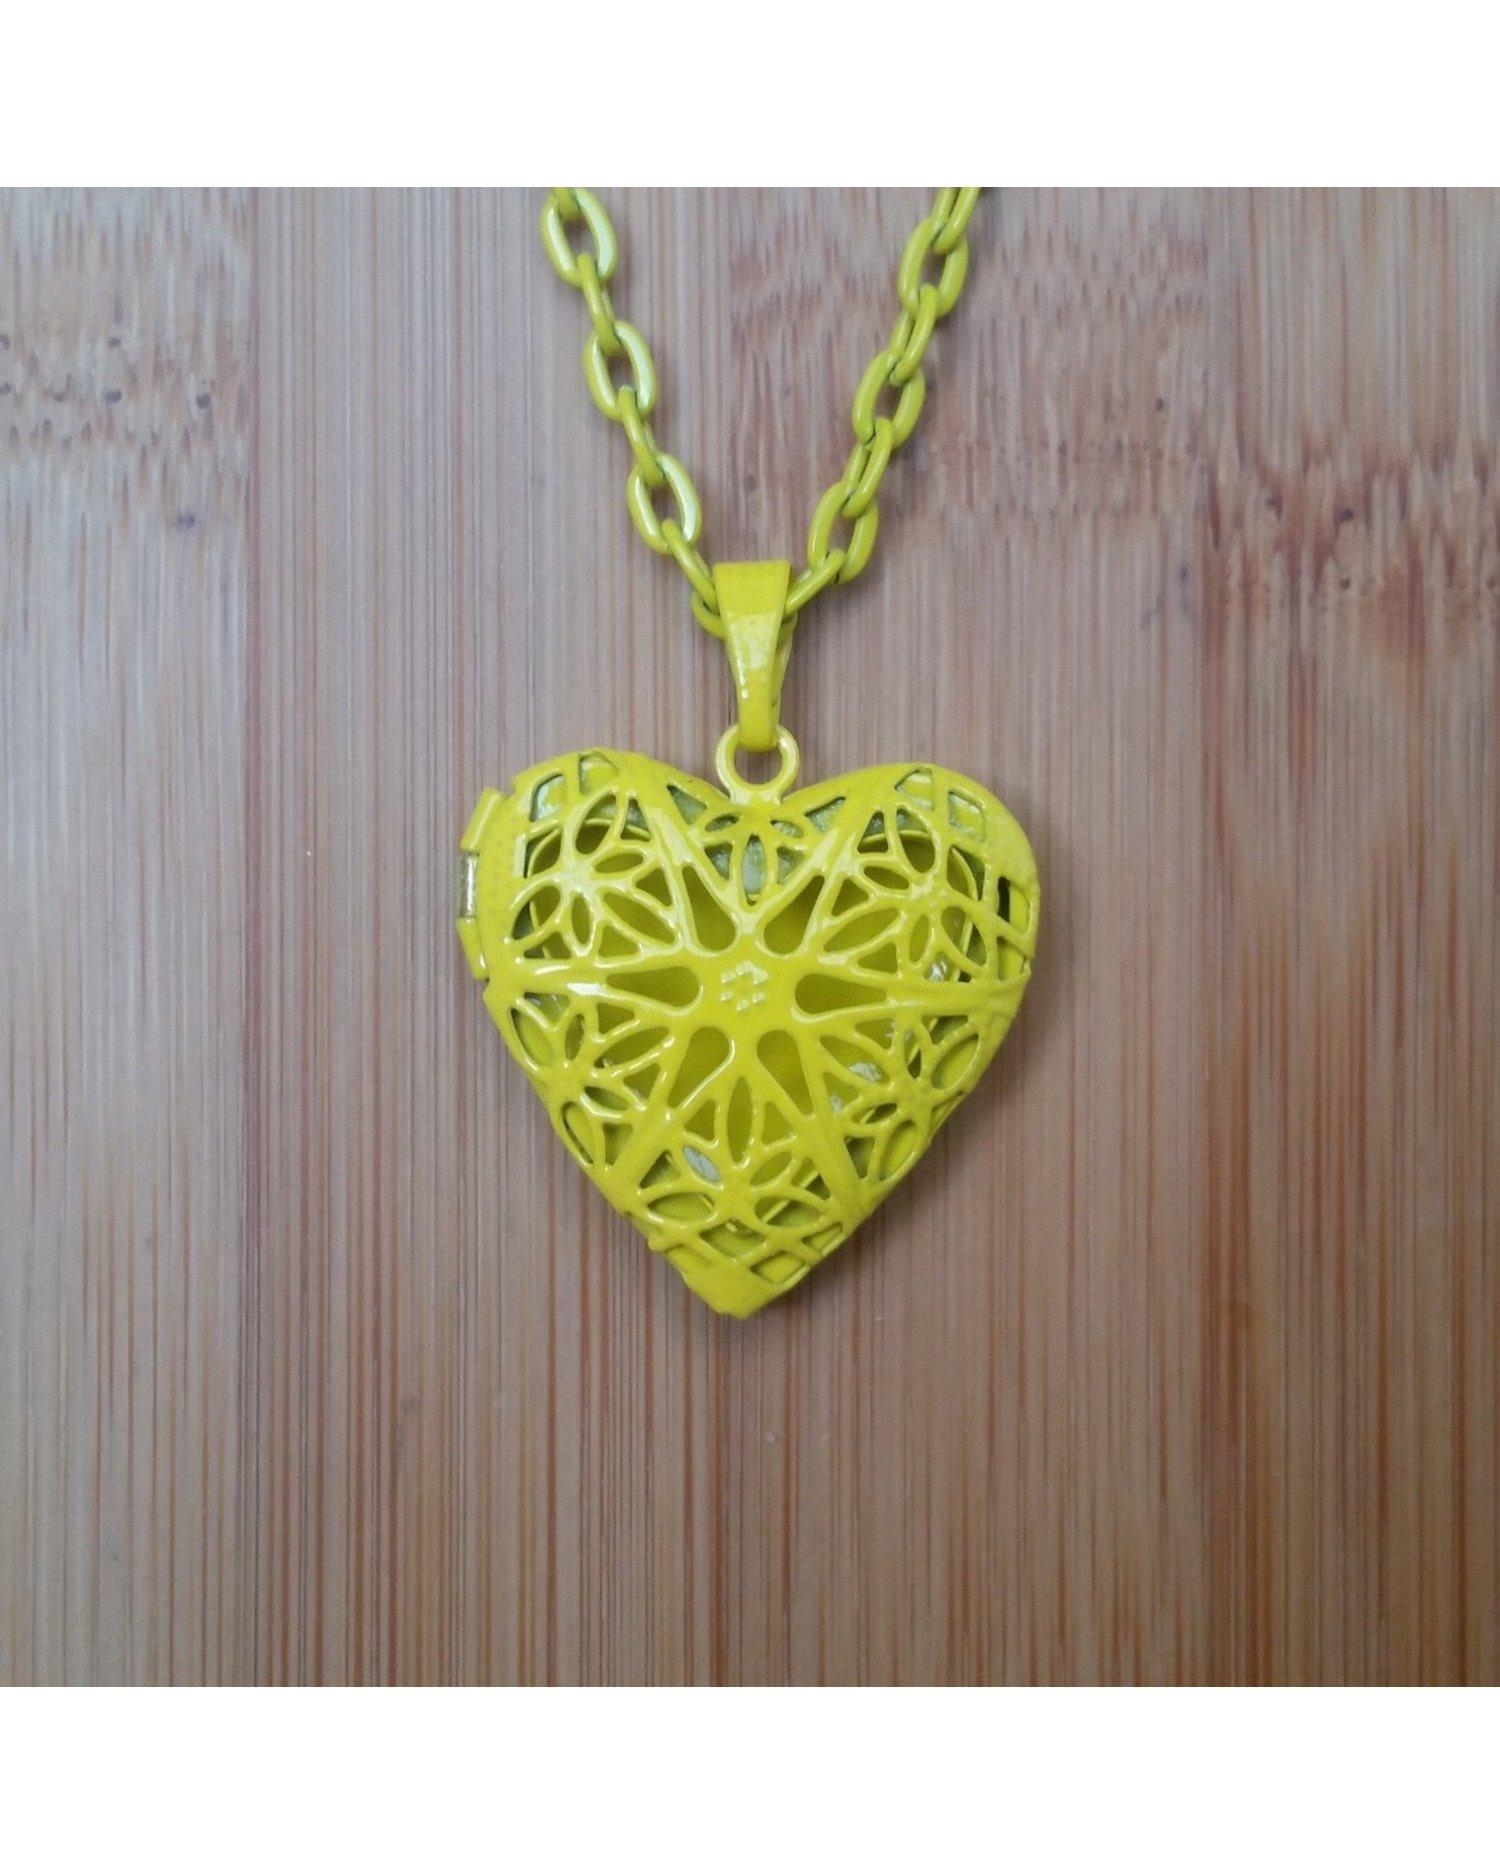 Girls/Kids Lemon Yellow Color Sunburst Heart Hand Painted Locket Pendant Essential Oil Aromatherapy Diffuser Necklace K026 - Essentially Elegant